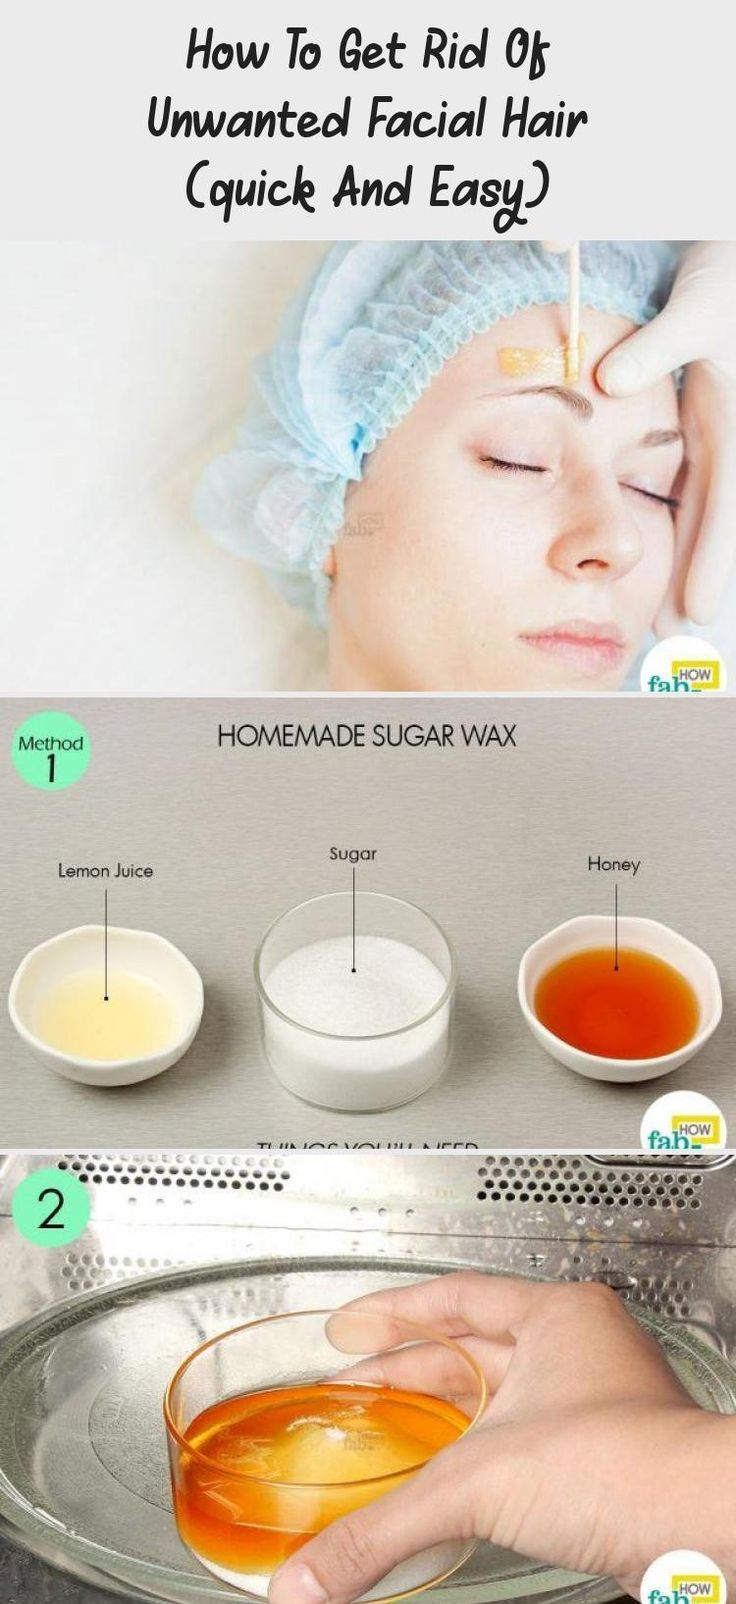 How to get rid of unwanted facial hair quick and easy